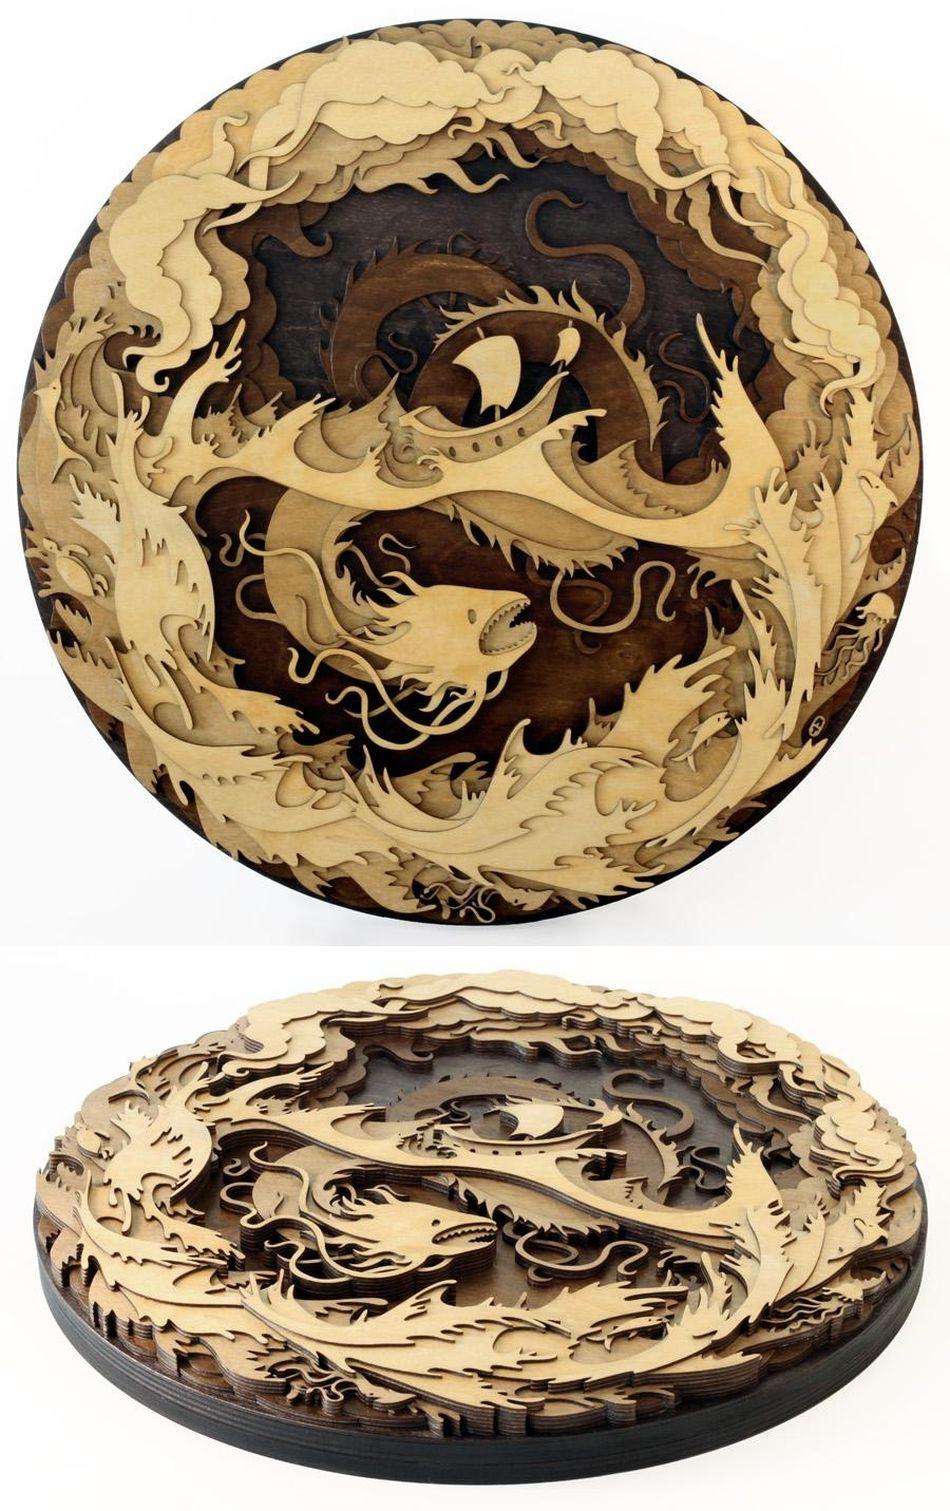 Martin Tomsky laser cut wood sea serpent